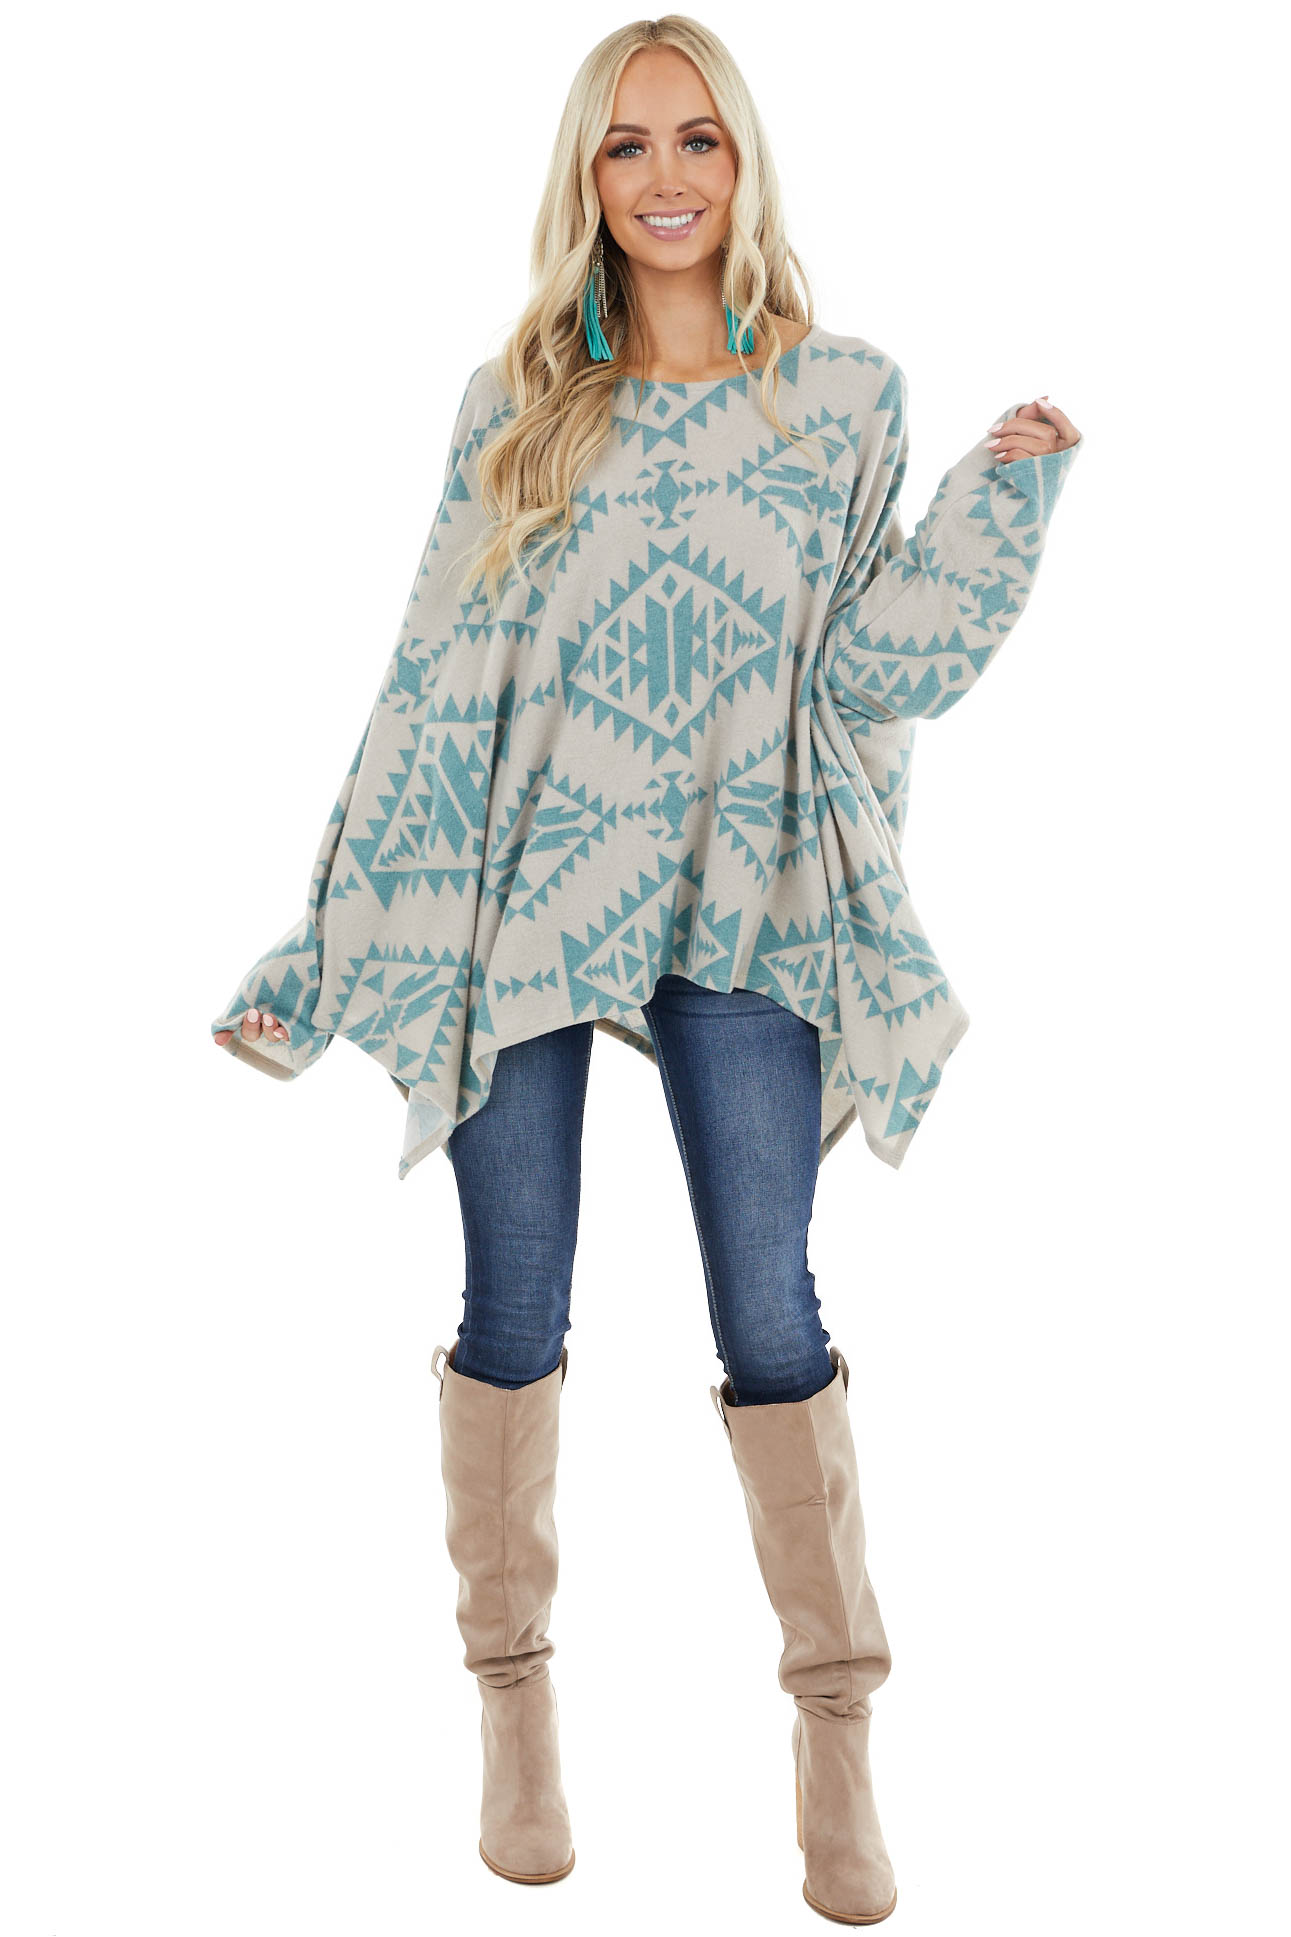 Dove Grey and Teal Tribal Print Long Sleeve Poncho Top